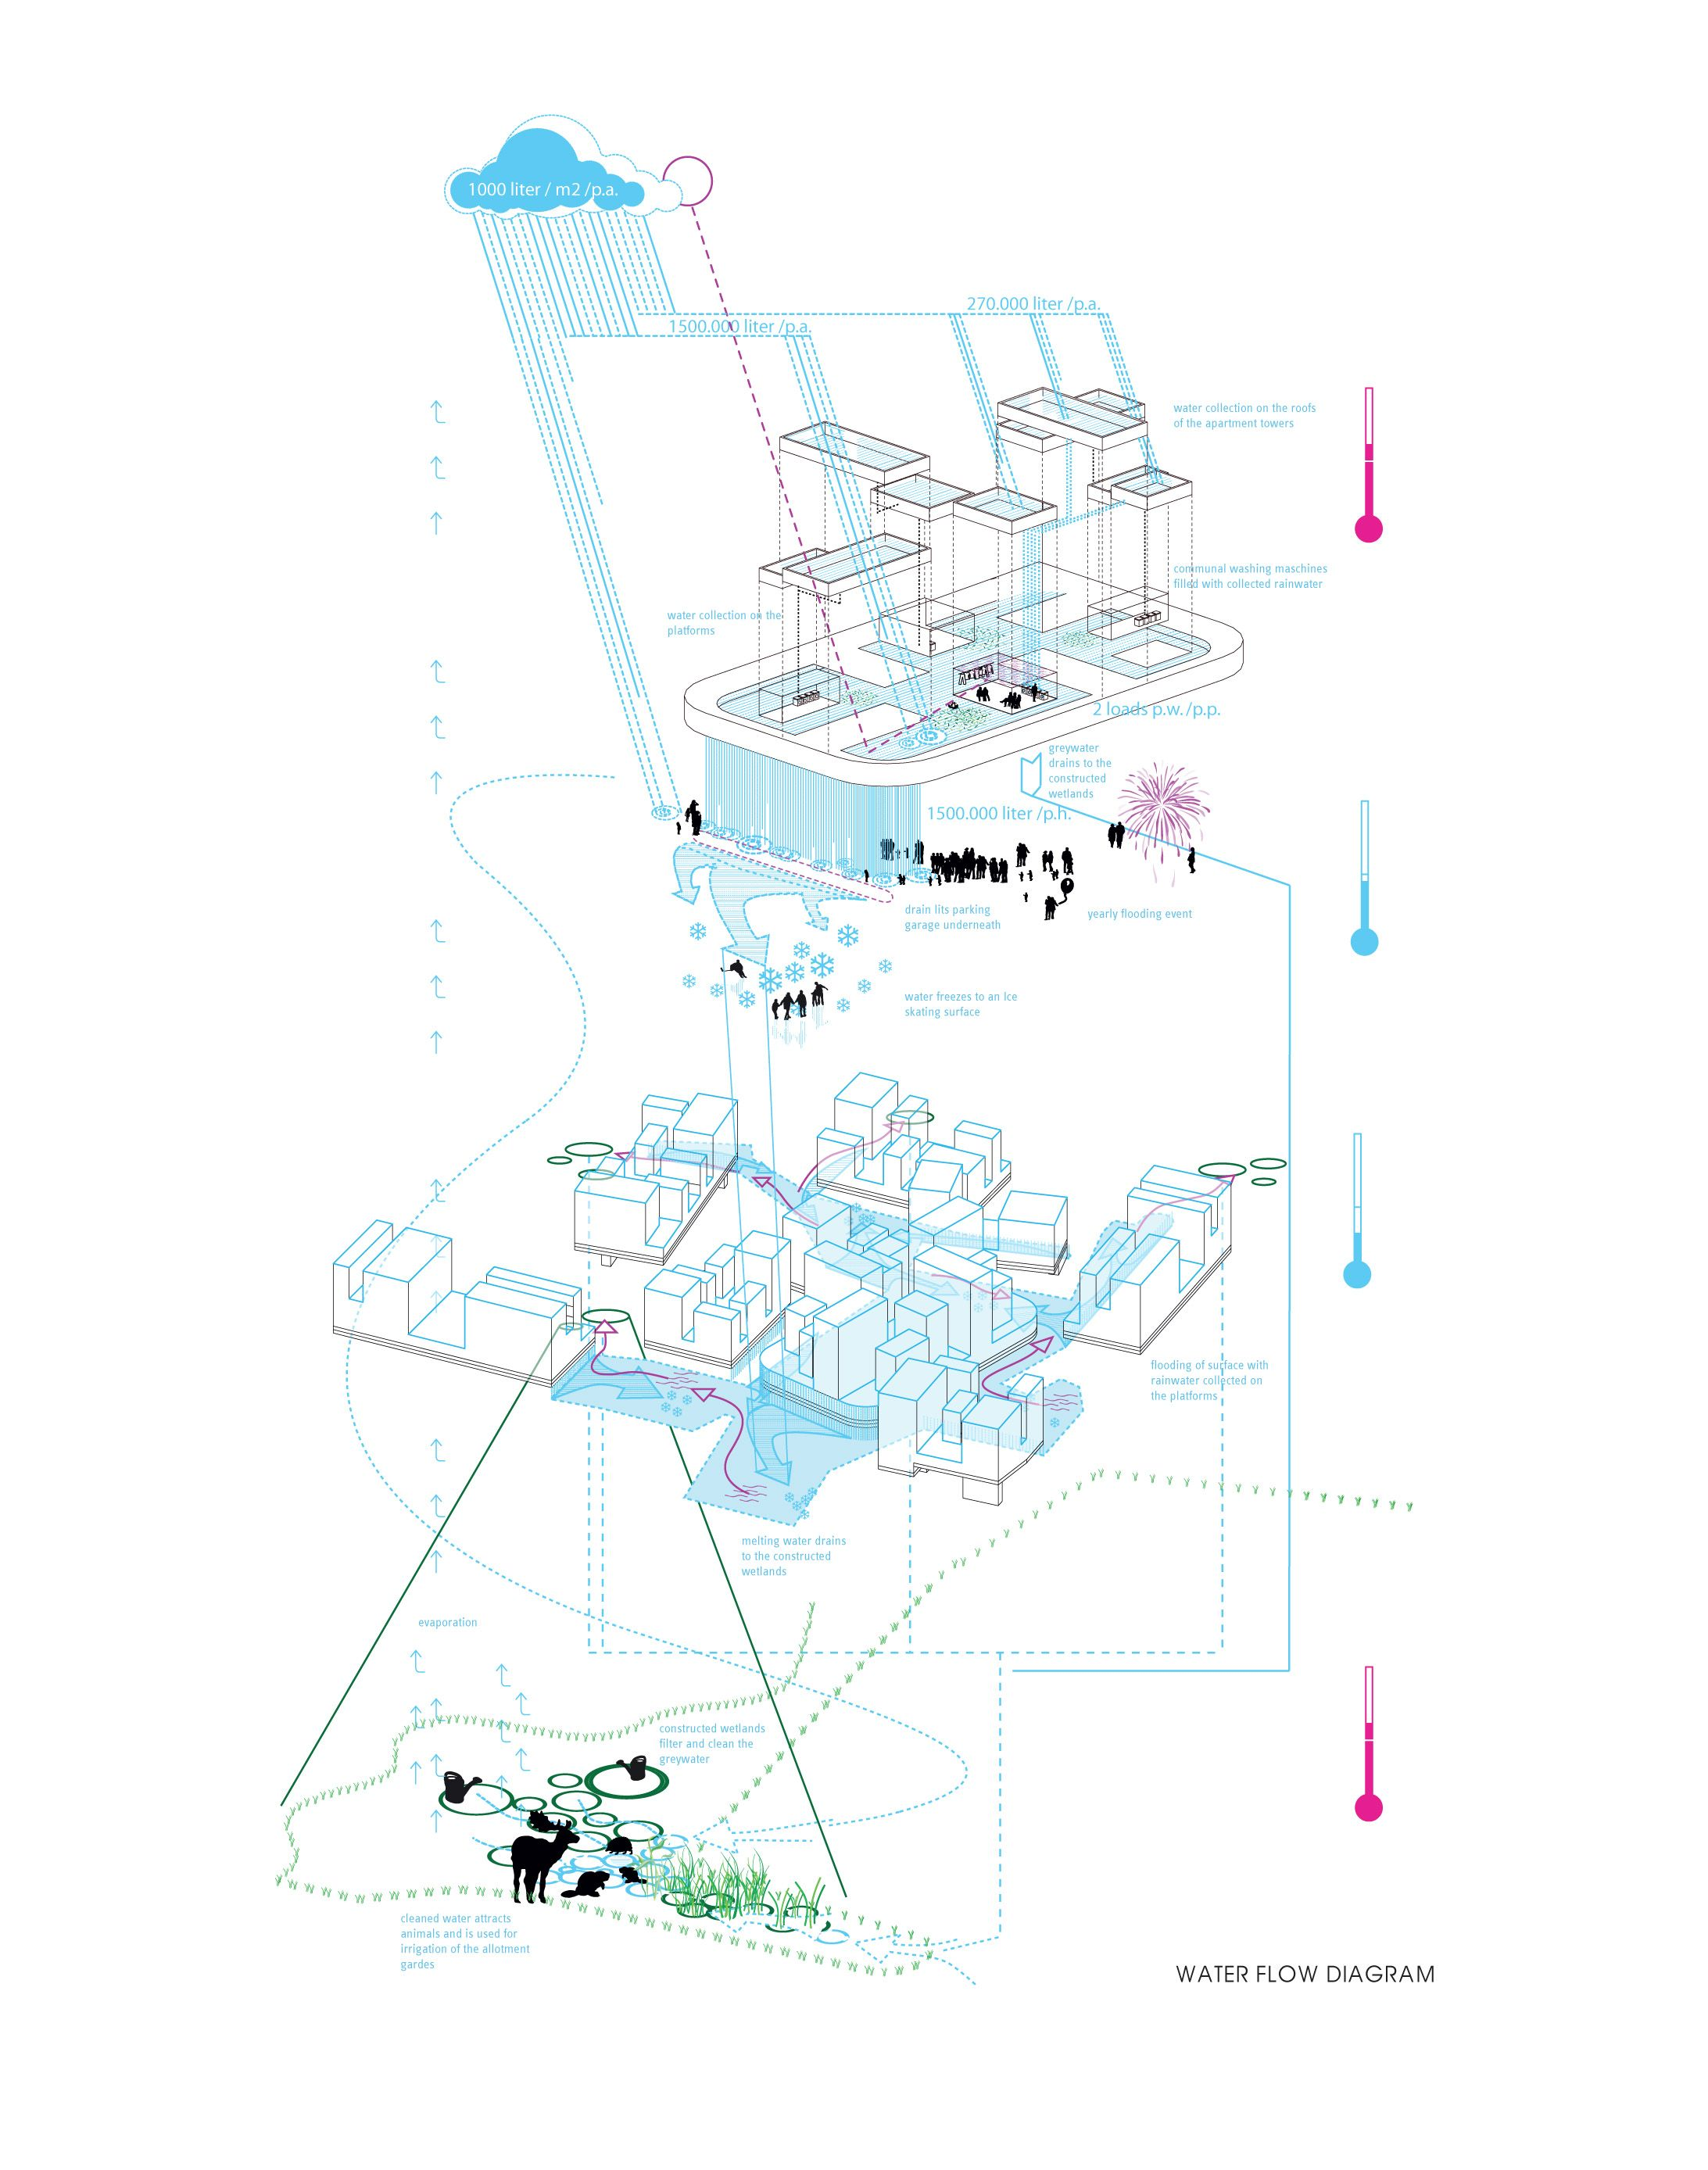 medium resolution of water flow diagram drawings architecture concept diagram architectural 3d diagrams for pinterest